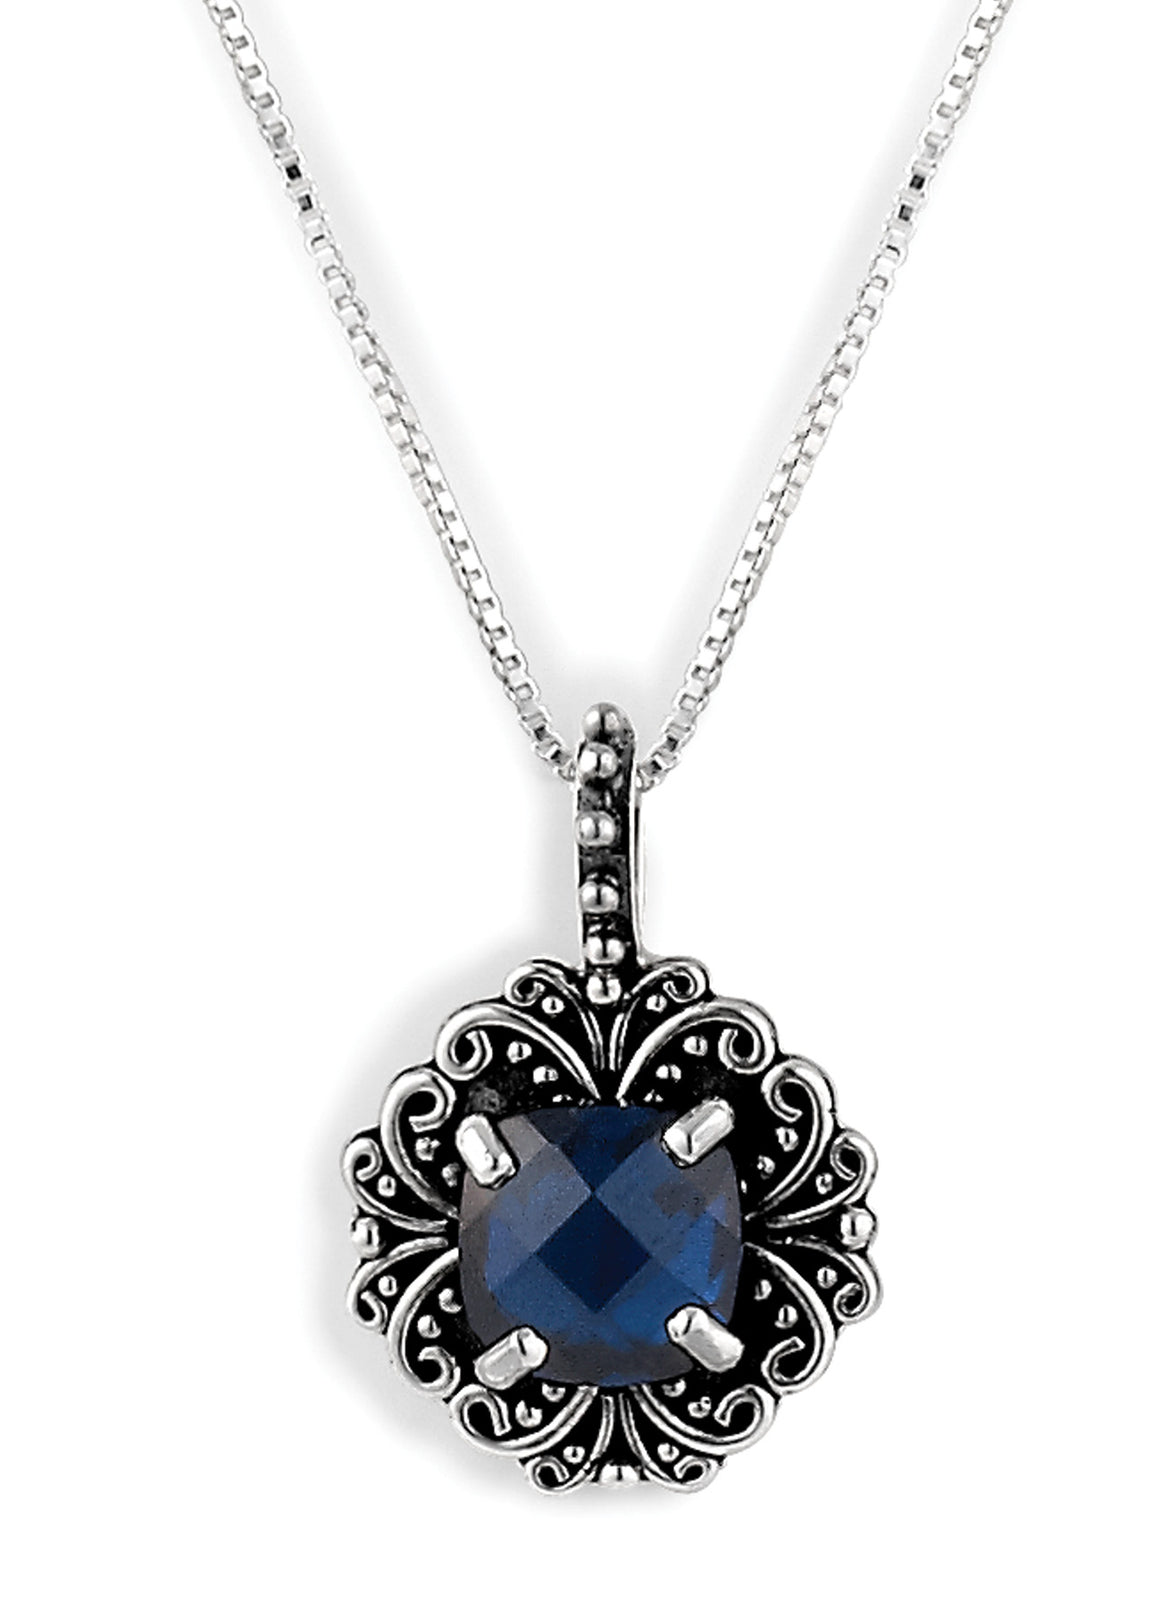 "September ""Labor of Love"" Birthstone Necklace from Bonn Bons Birthstone Necklaces by Lori Bonn (512909BSP)"